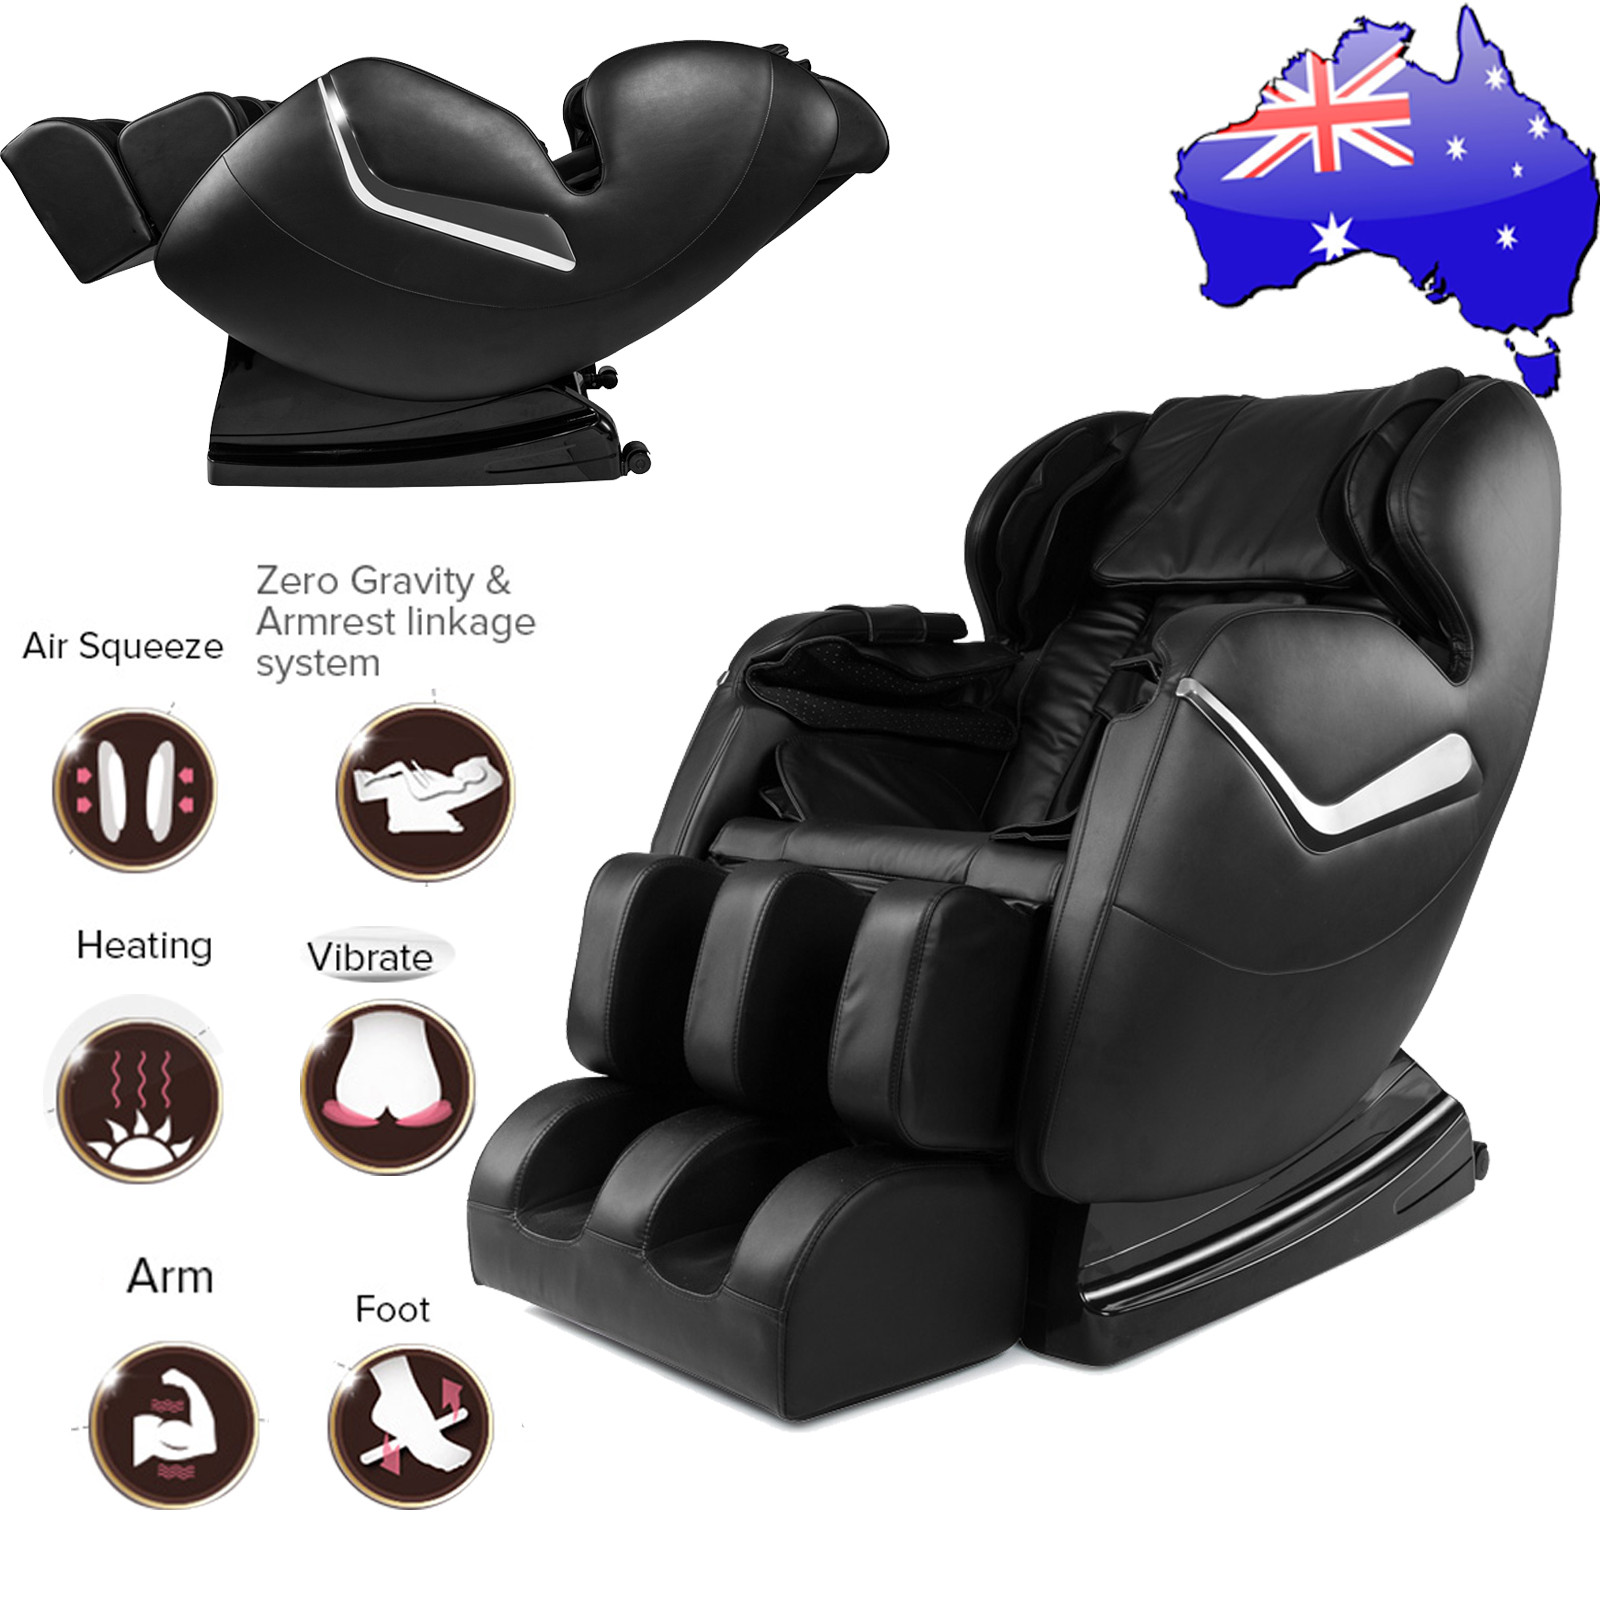 AU Genuine Real Relax Full Body Massage Chair Recliner ZERO